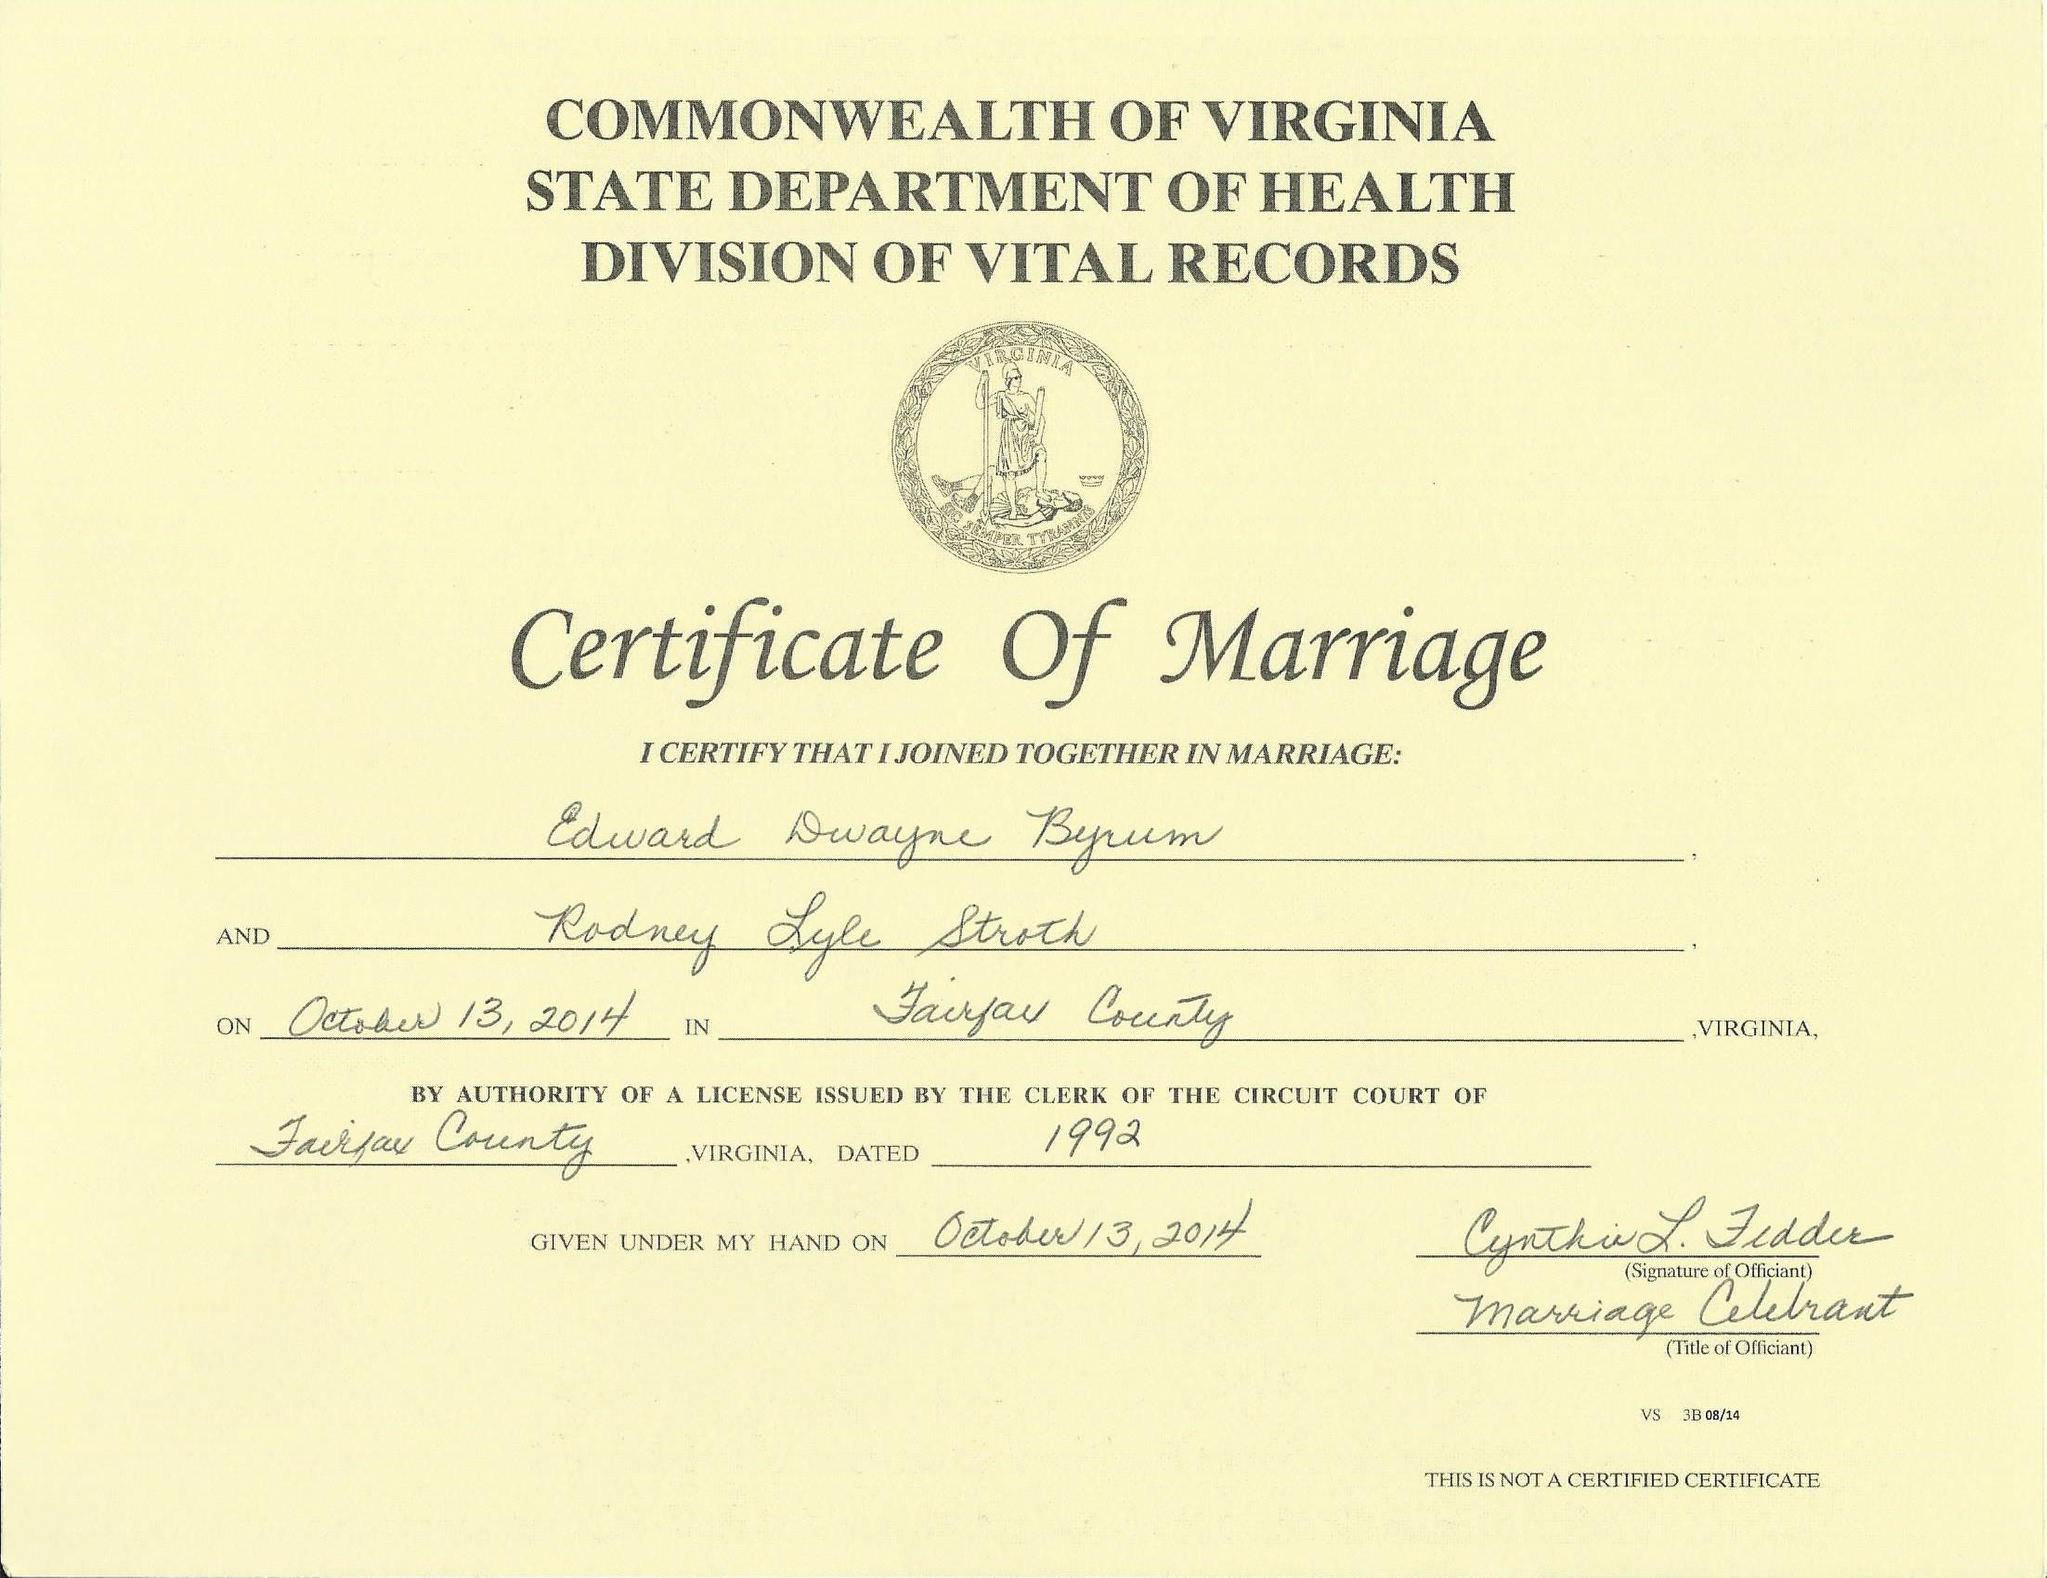 marriage license vs certificate wedding certificate This is the VA certificate found on Google and I was told means absolutely nothing Just a pretty paper to be framed I can t find a picture of the